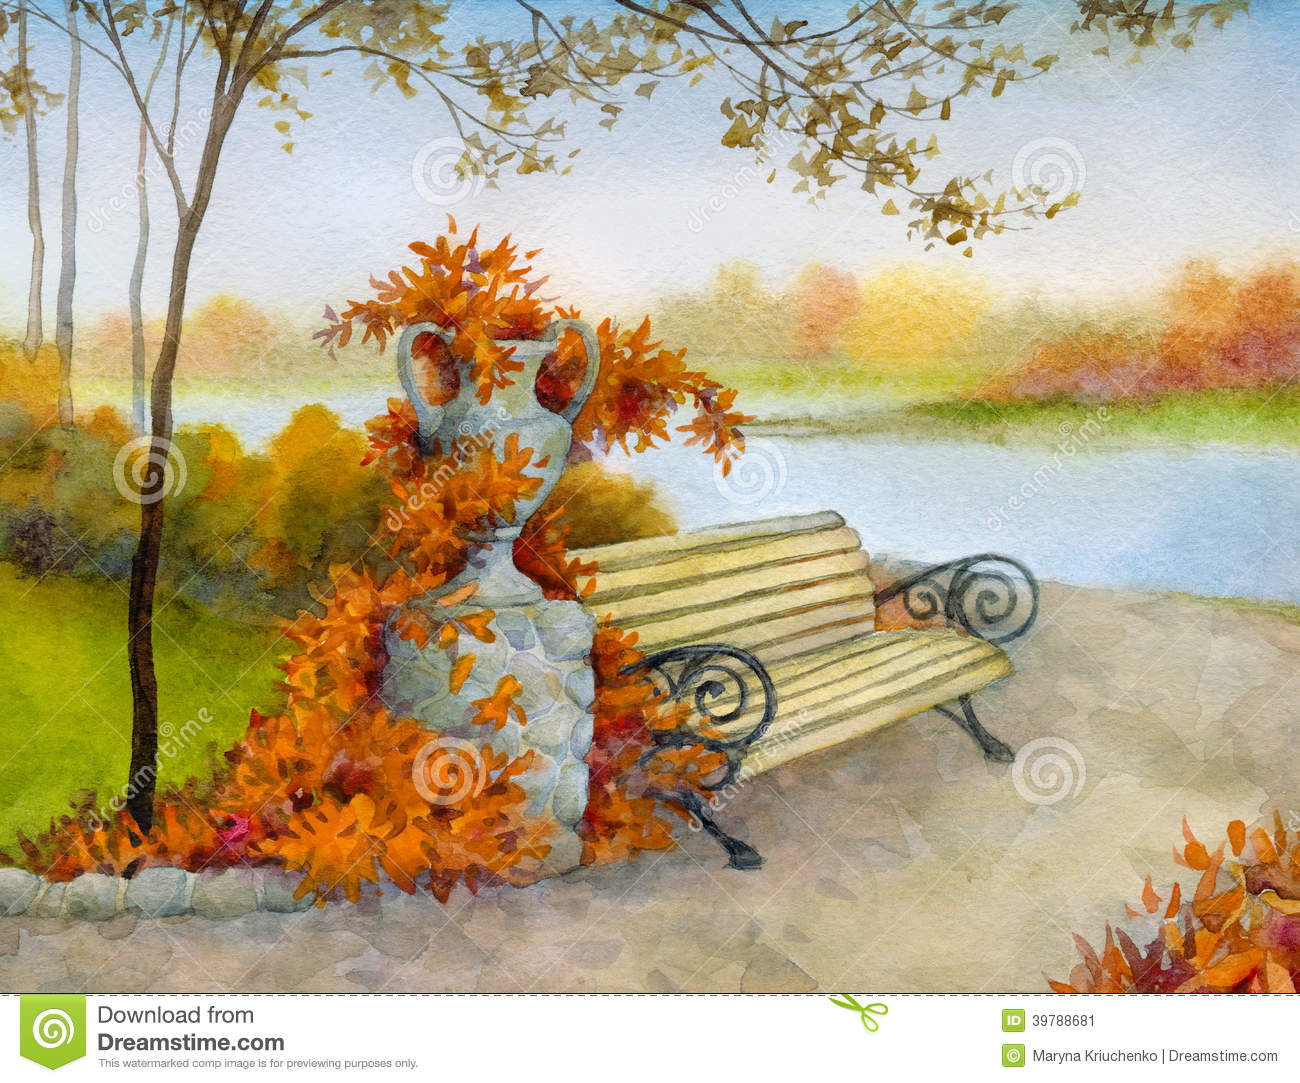 Bench clipart park tree. Autumn clipground decorative in